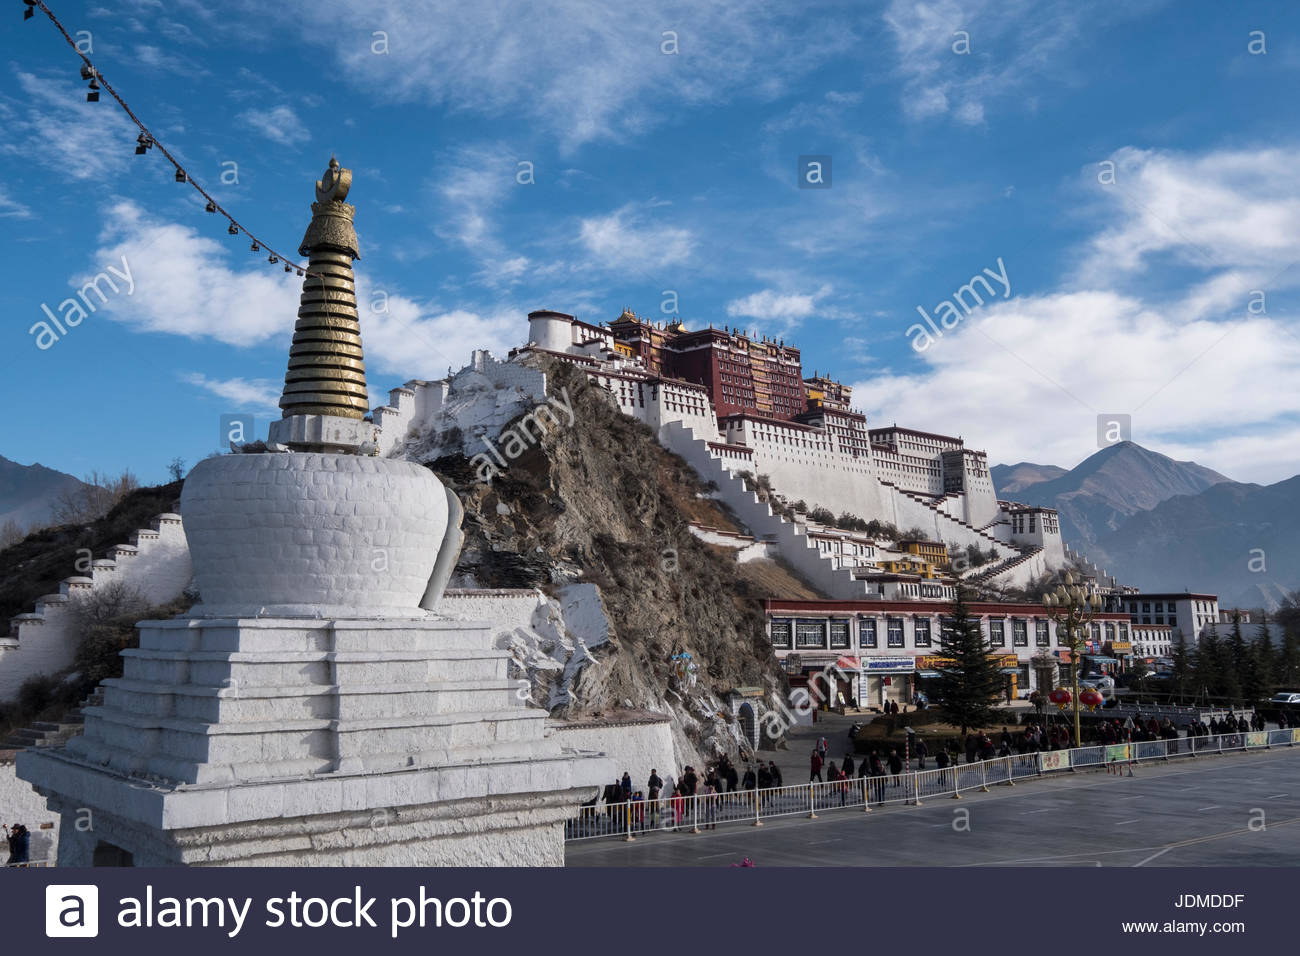 The Potala Palace in Lhasa. - Stock Image